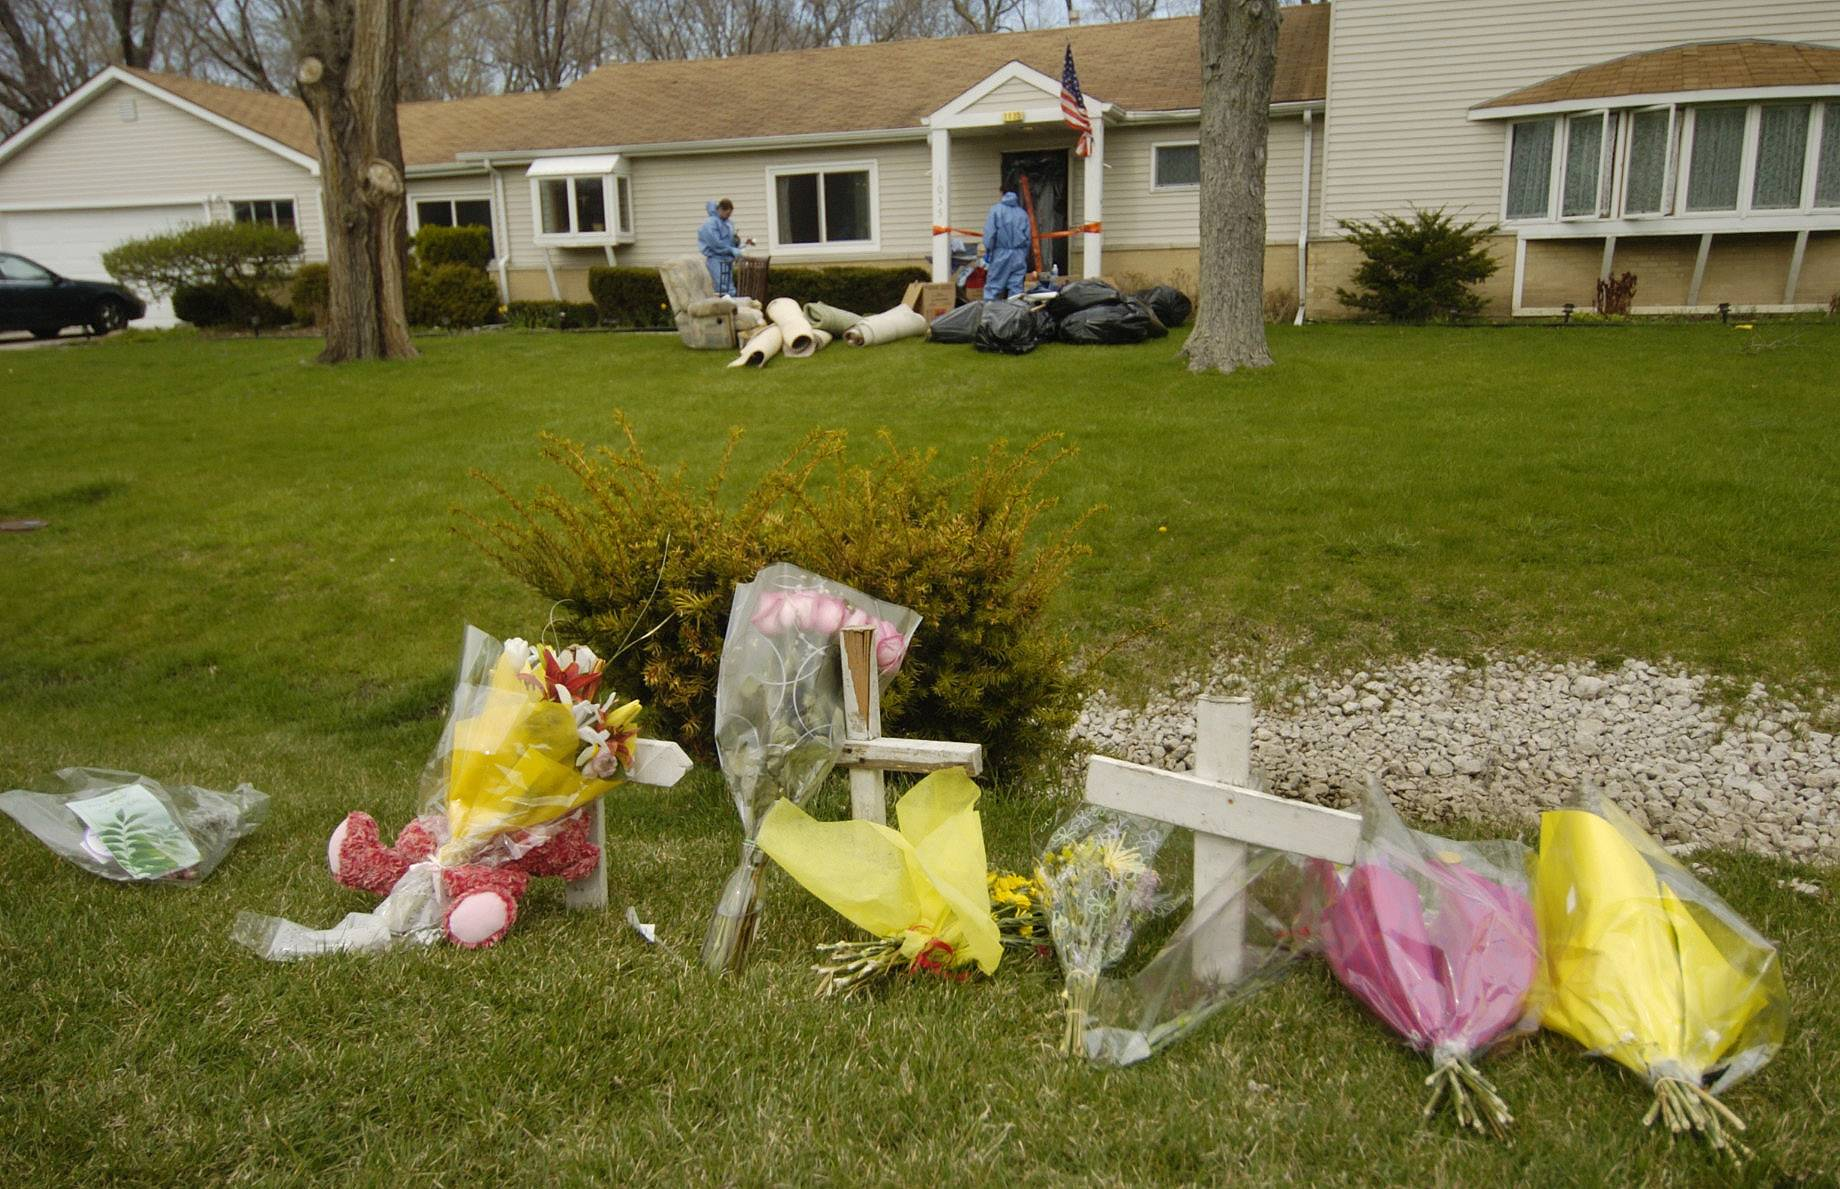 A makeshift memorial appeared outside the Engelhardt home in Hoffman Estates following the April 2009 deaths of 18-year-old Conant High School senior Laura Engelhardt, her father Alan Engelhardt, and her maternal grandmother Marlene Gacek.